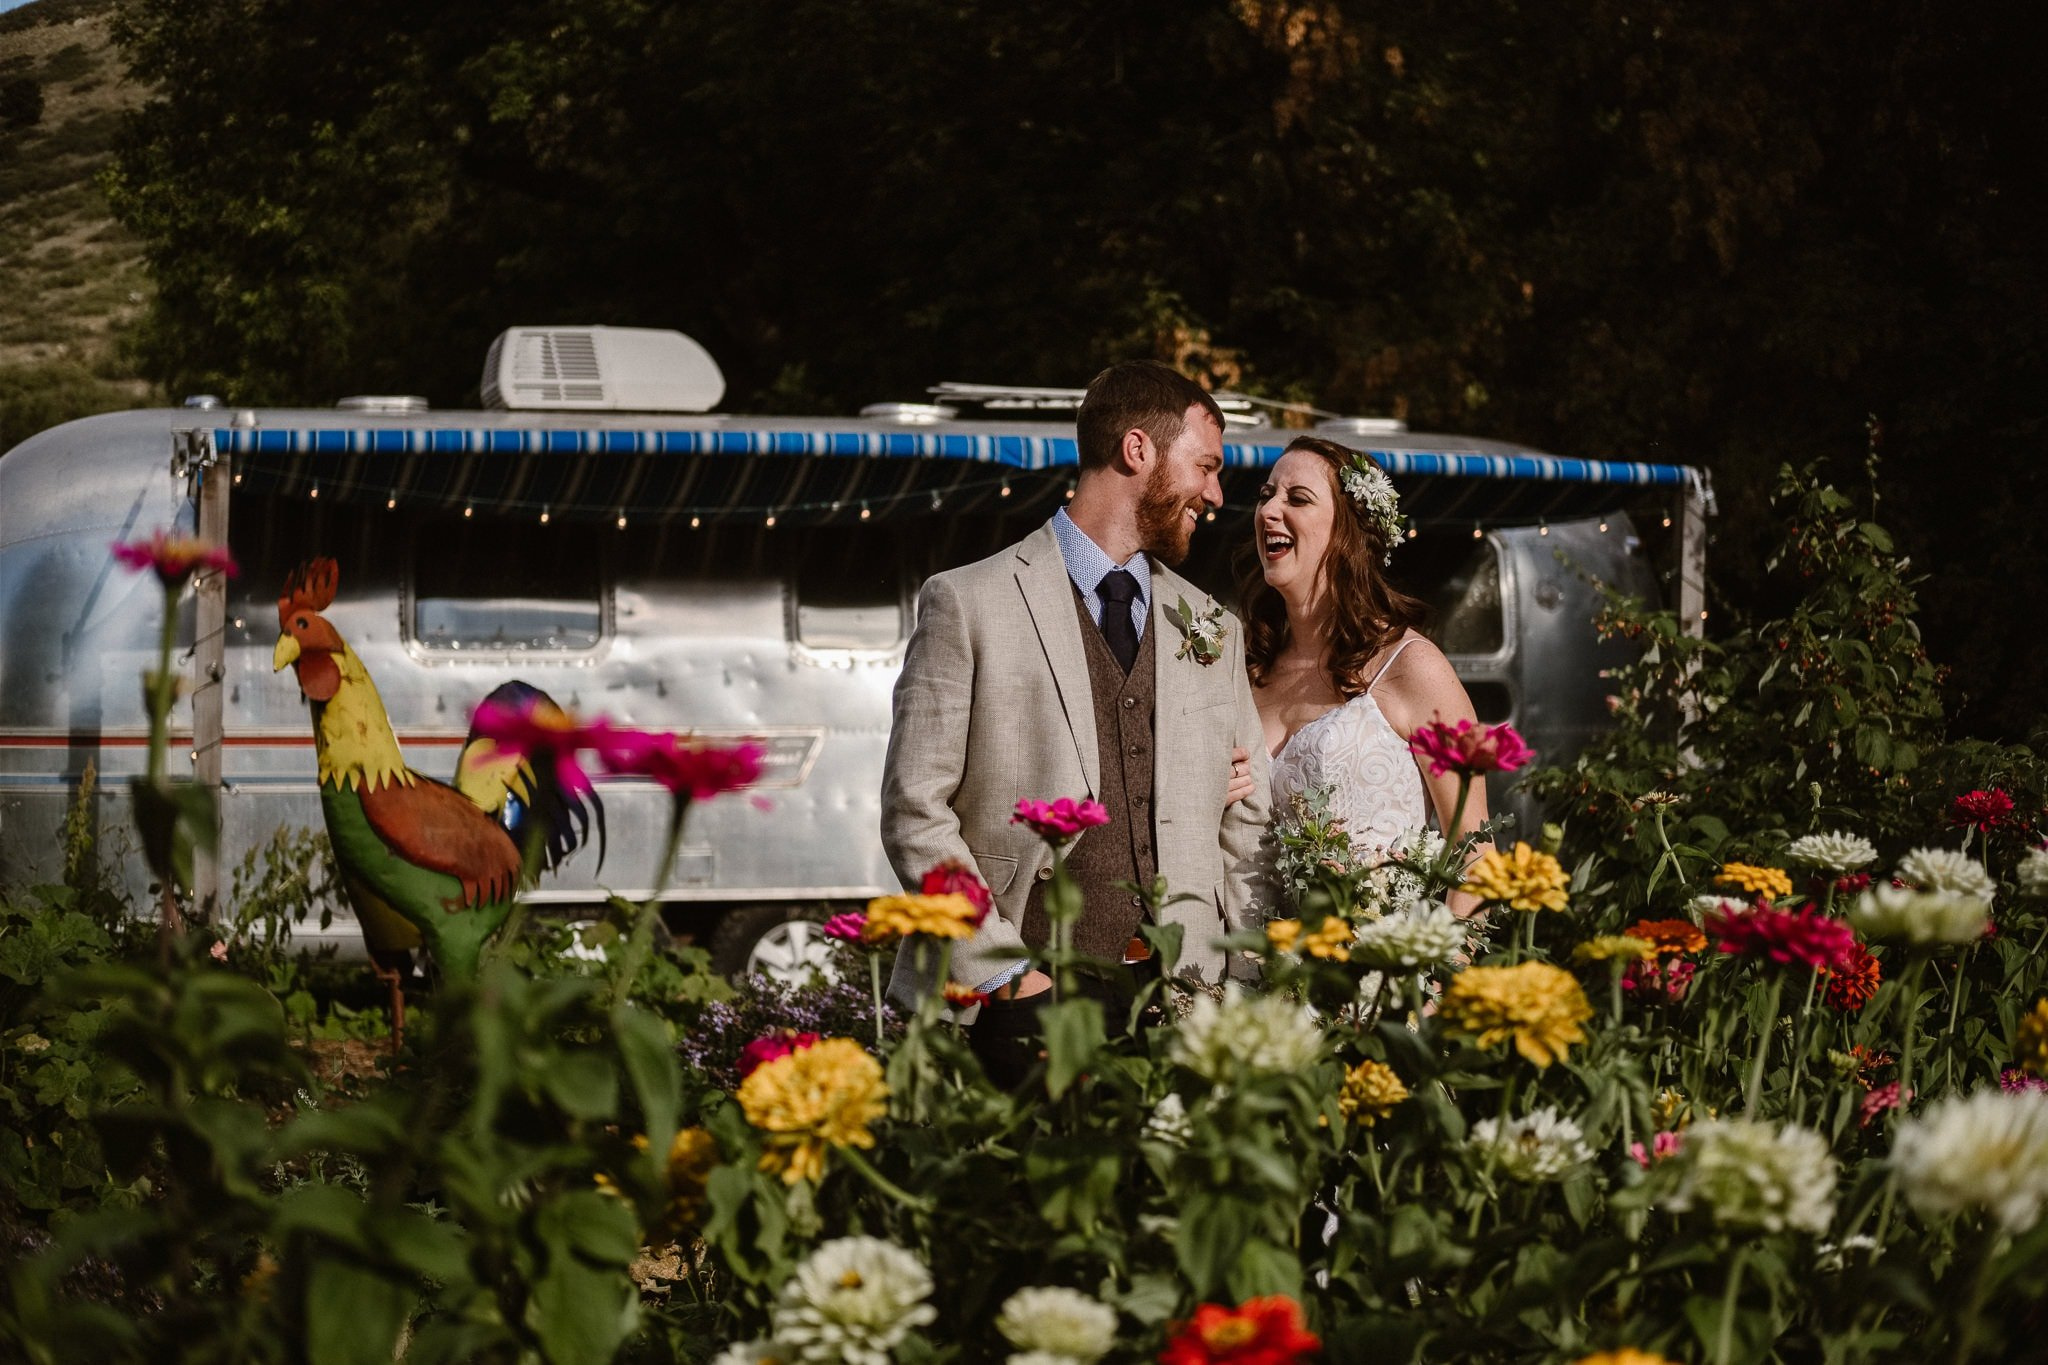 Lyons Farmette wedding photographer, Colorado intimate wedding photographer, bride and groom photos in front of airstream